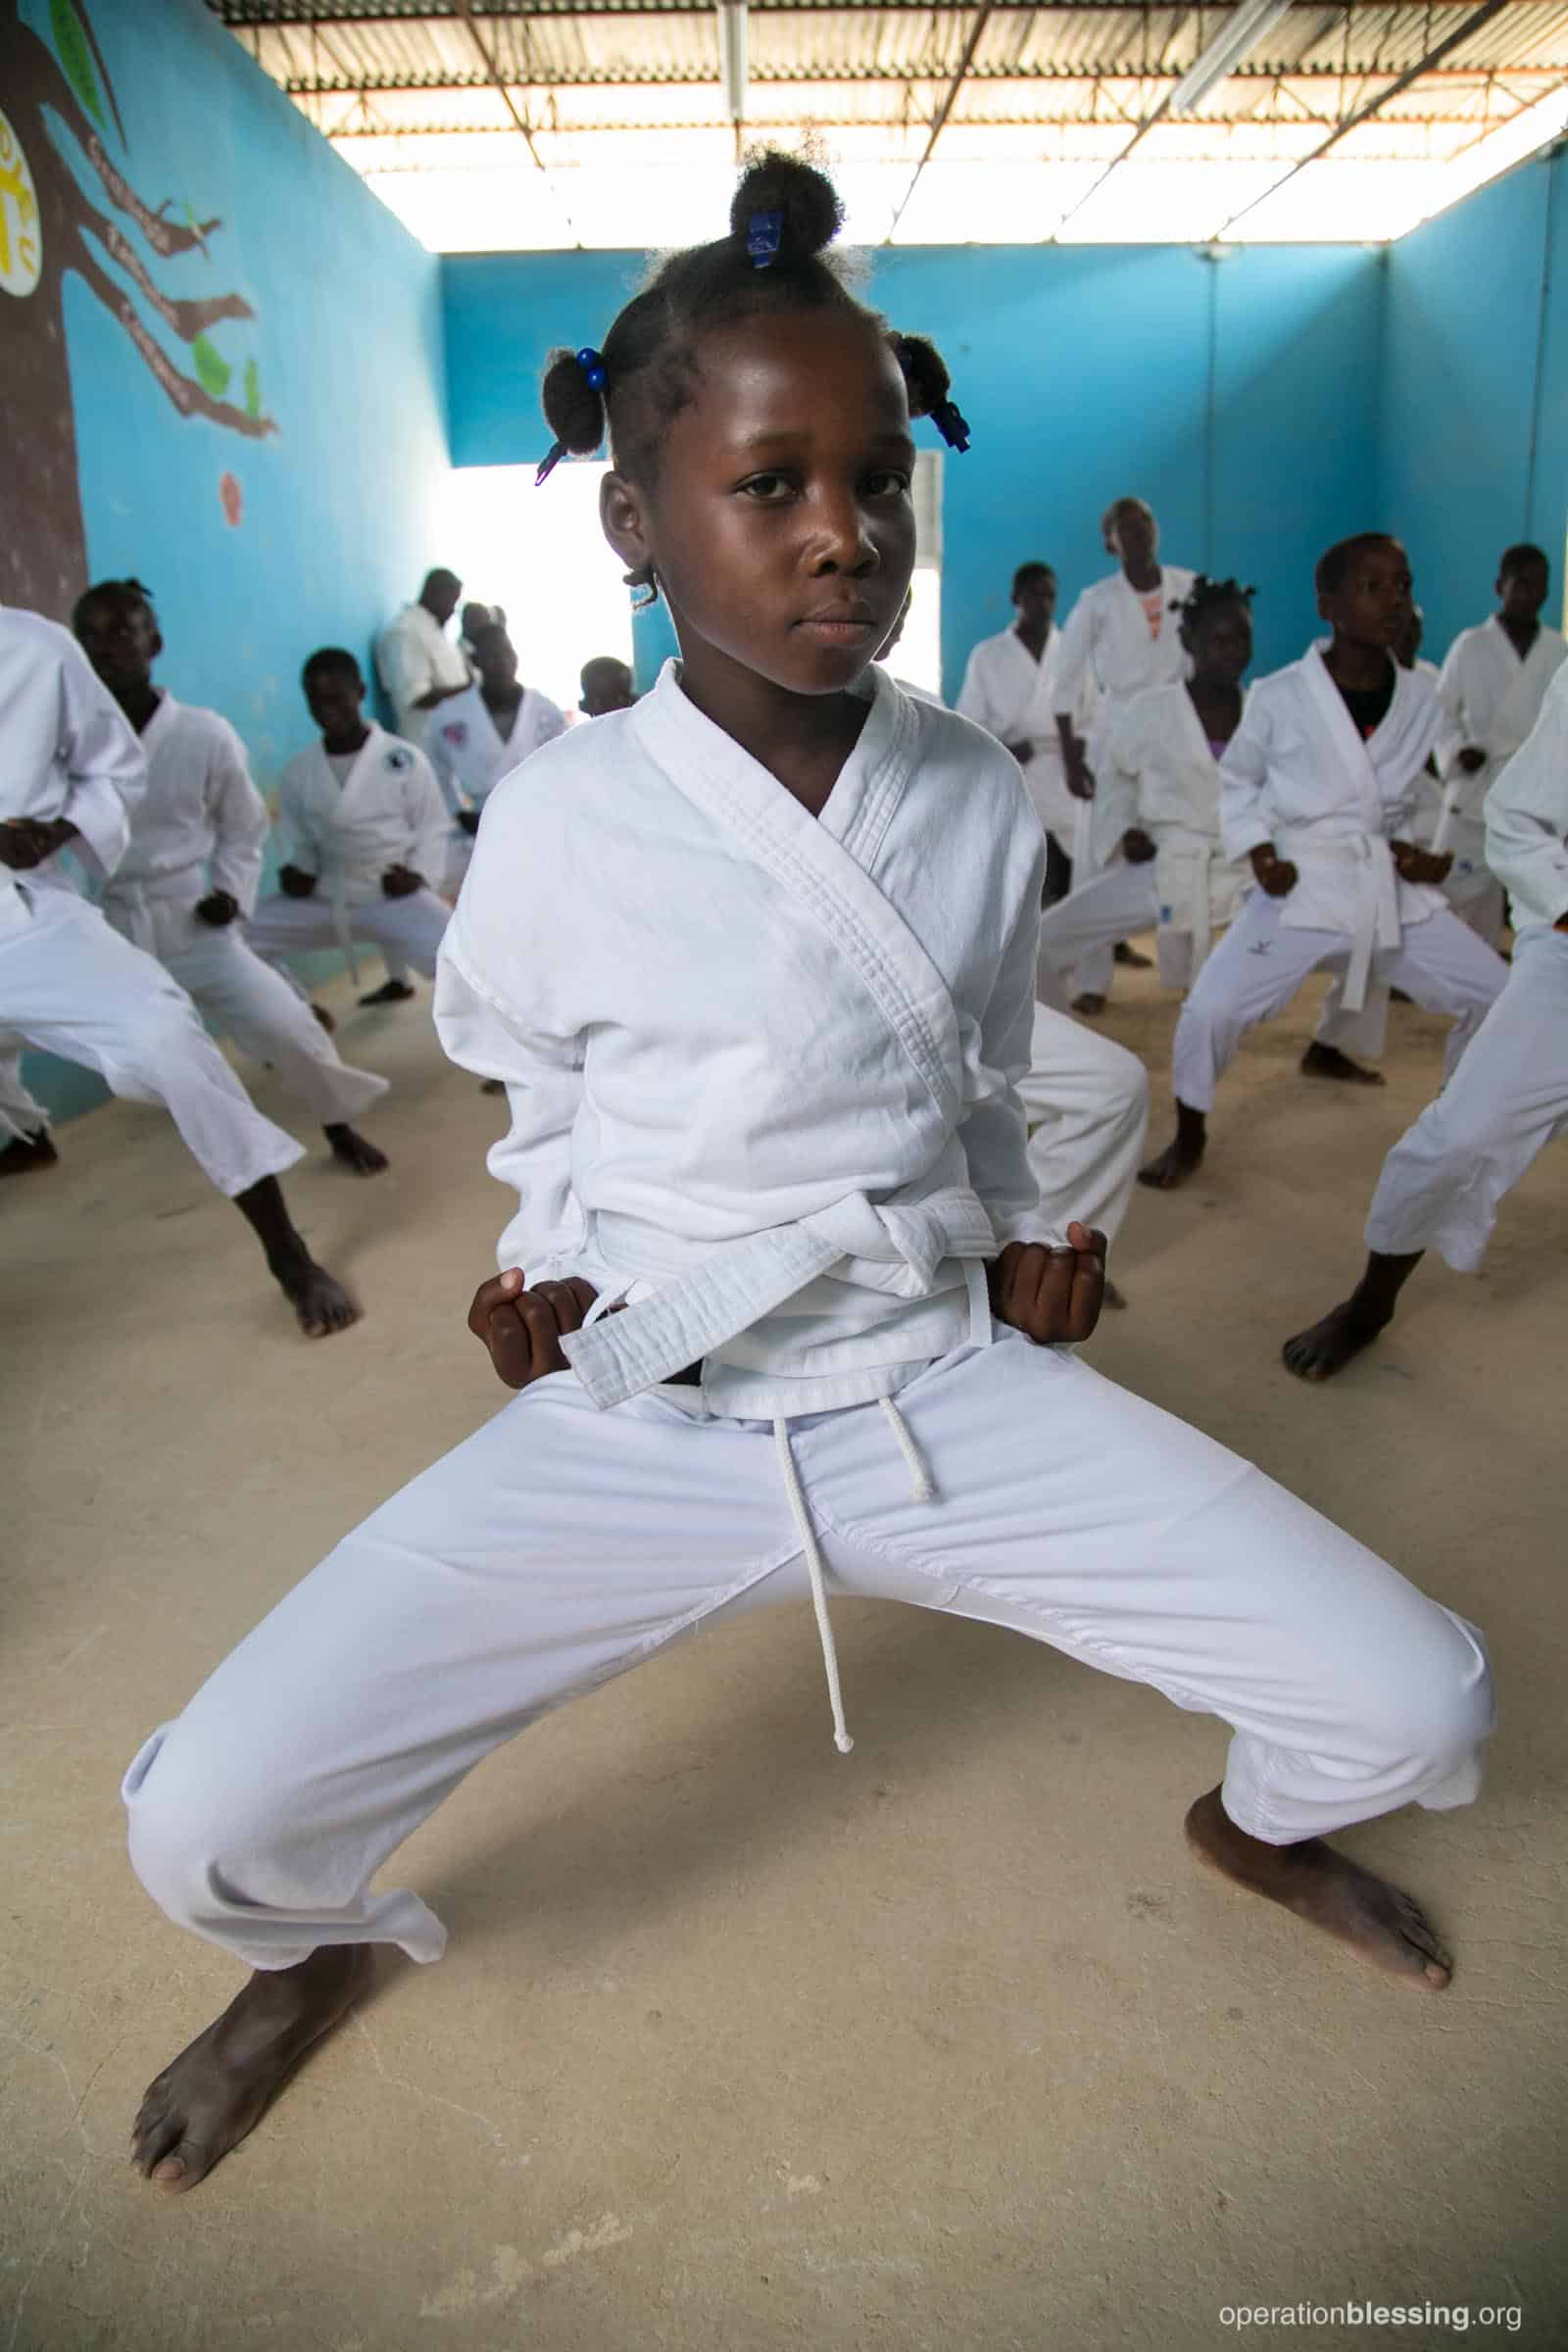 A young girl practices martial arts because Operation Blessing is investing in Haiti's children.